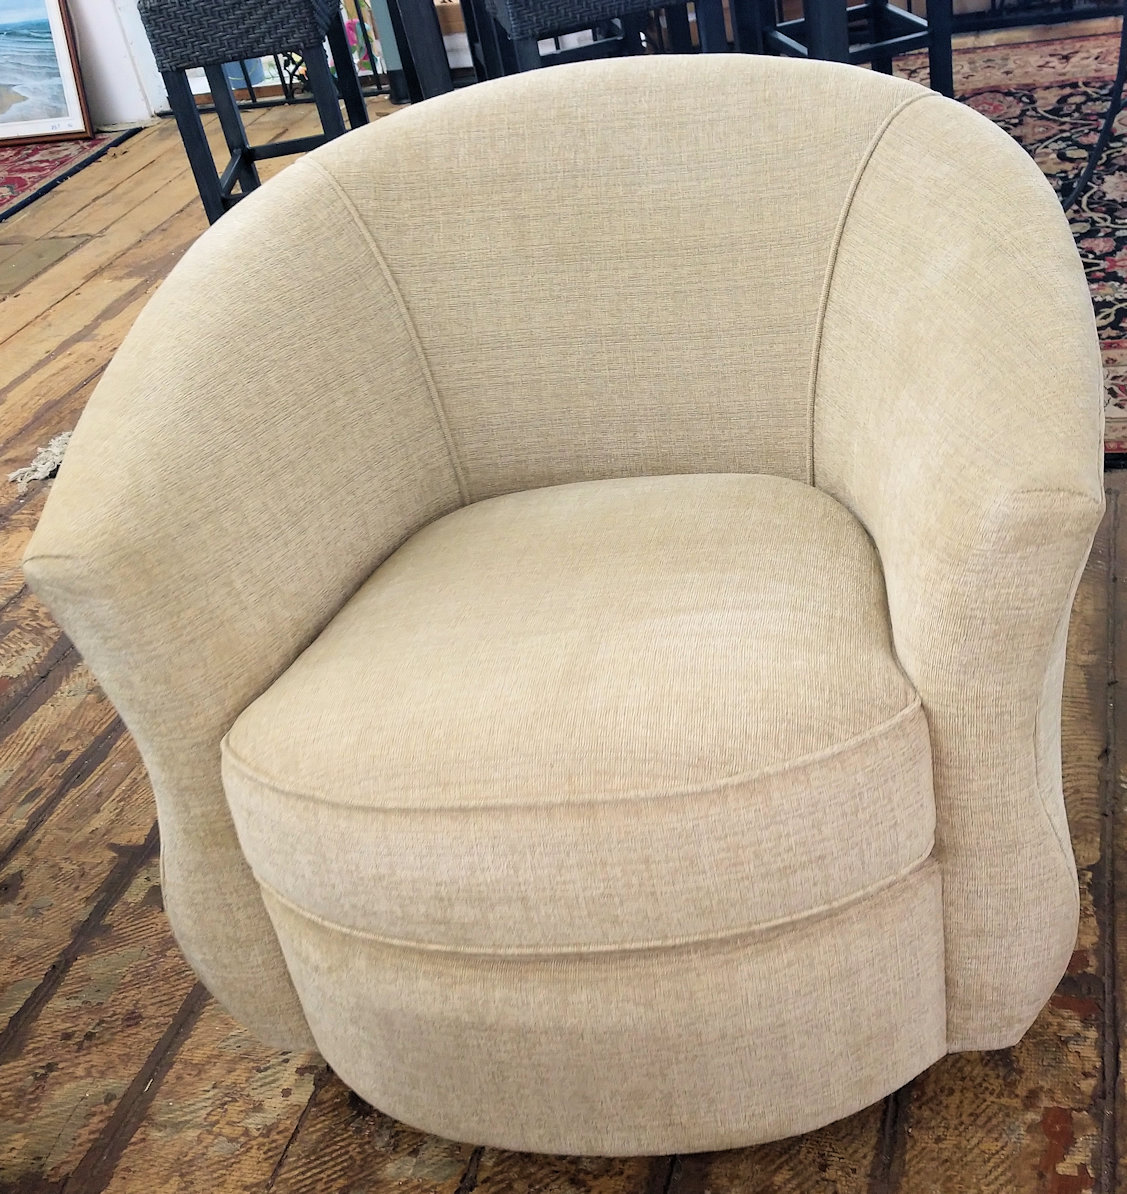 LR0262-Rocker-Swivel-Chair-Robb-Stucky